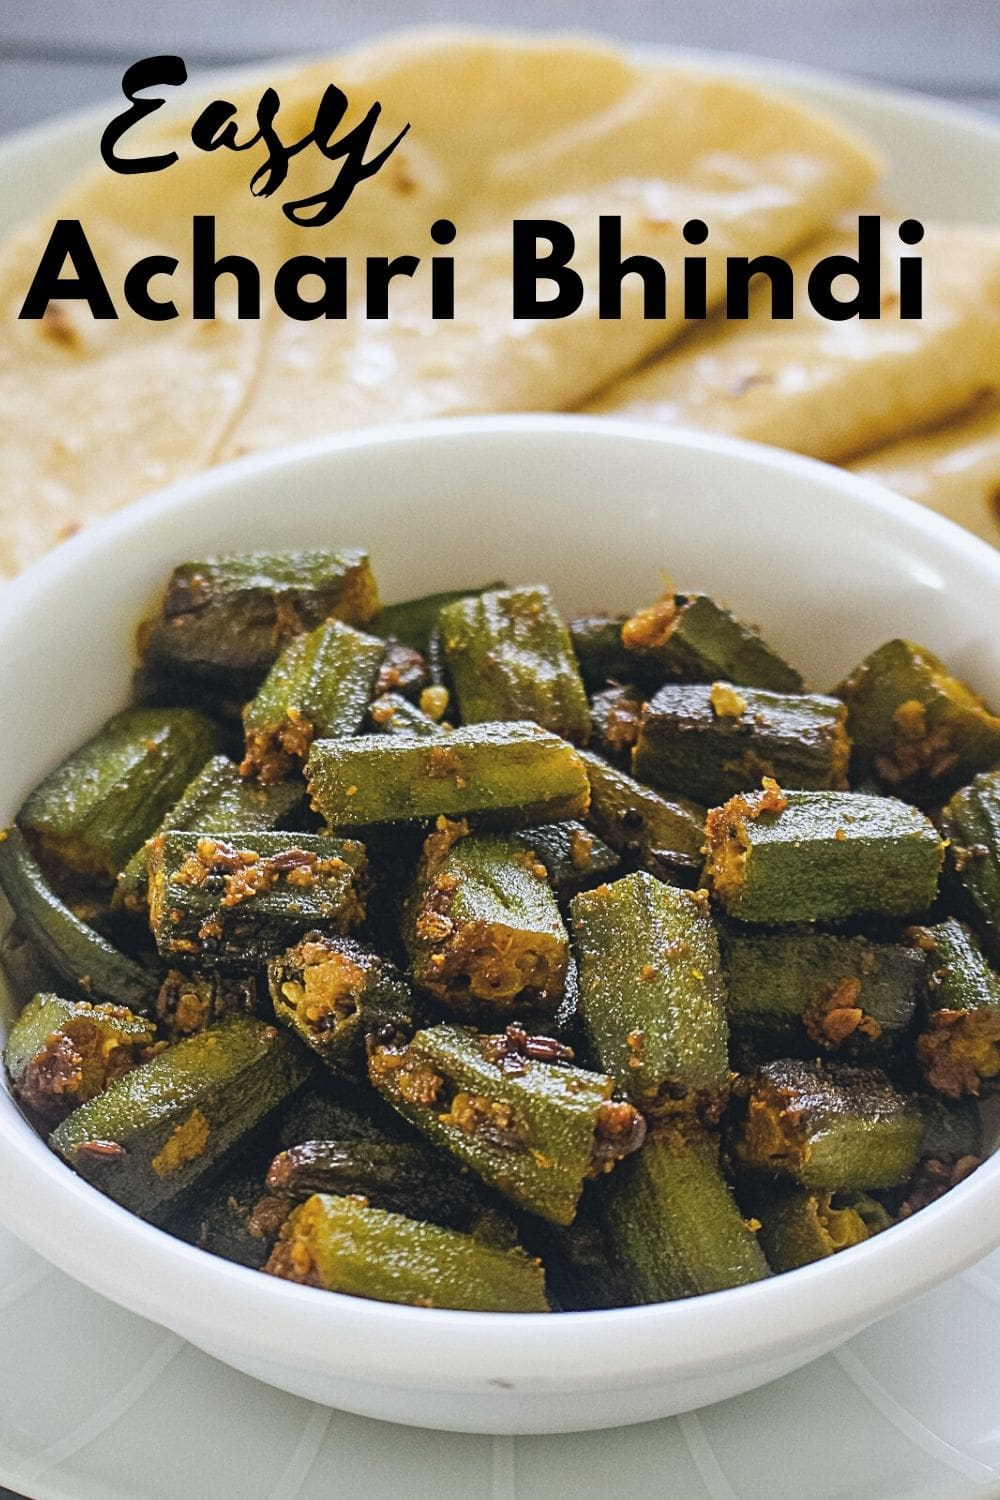 Achari bhindi served with 3 roti with text on the image.